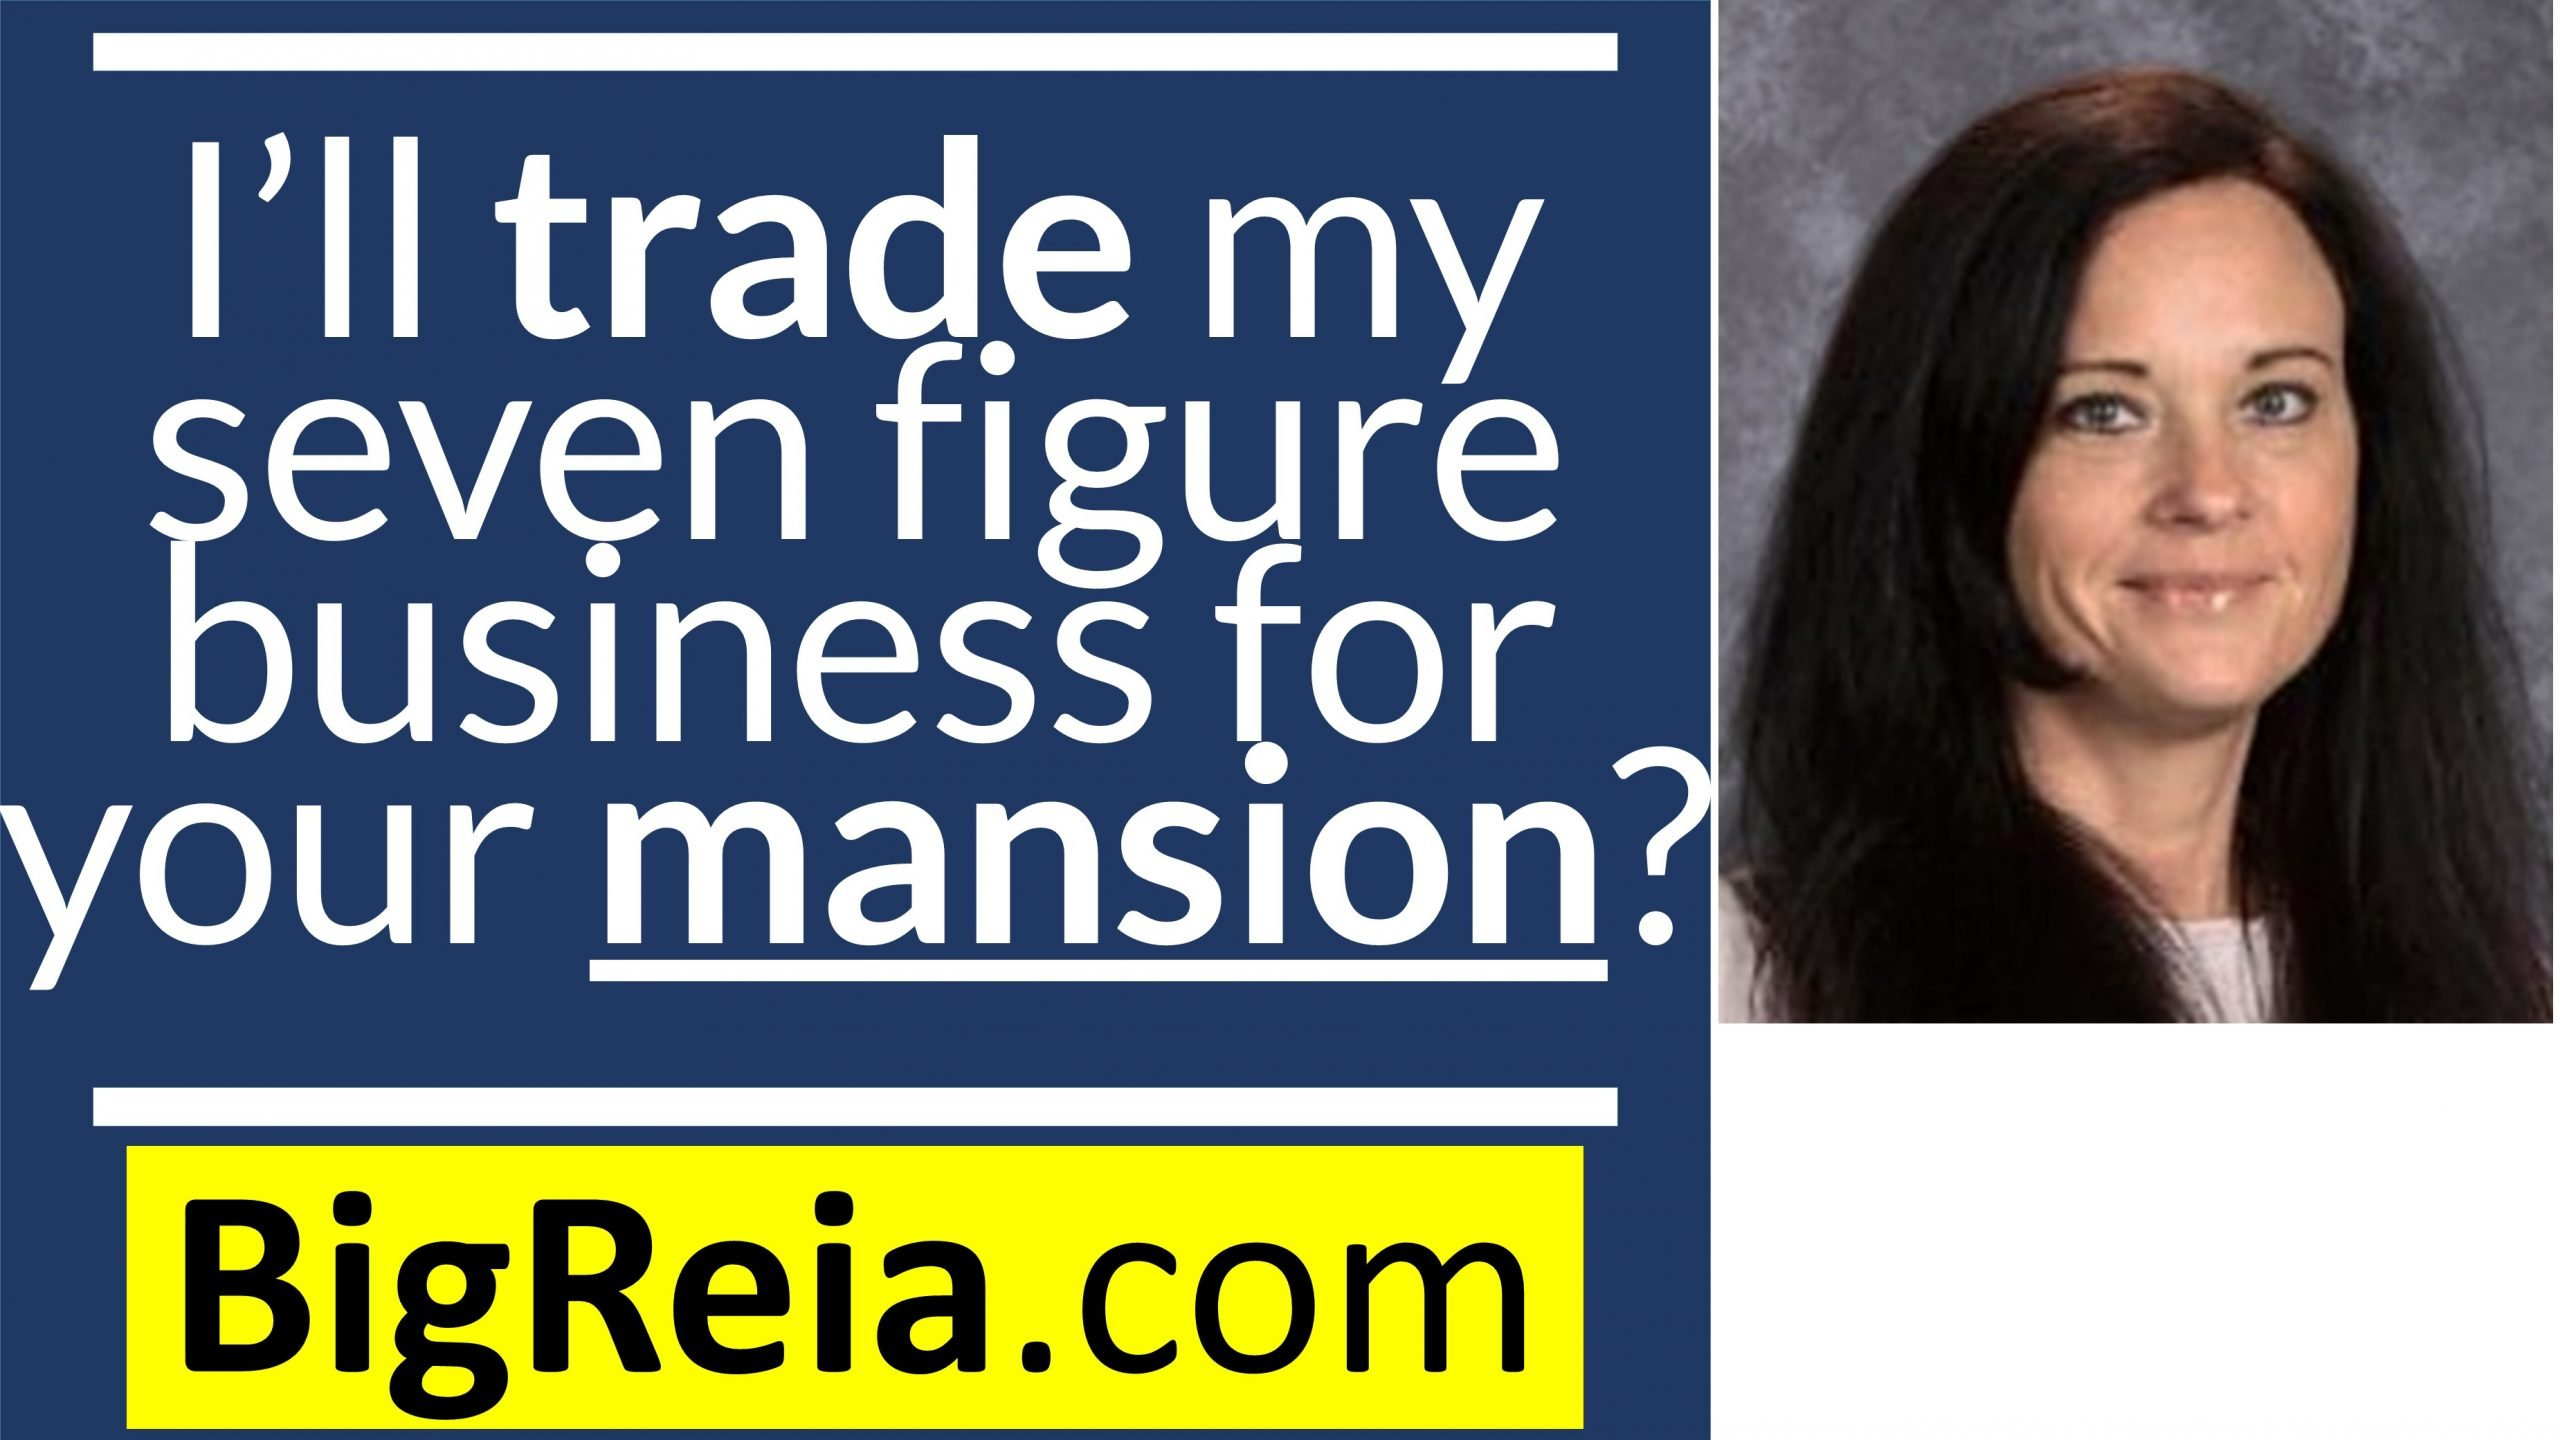 """I'll trade my business for your house."" How to trade a few signs for a mansion, explained."